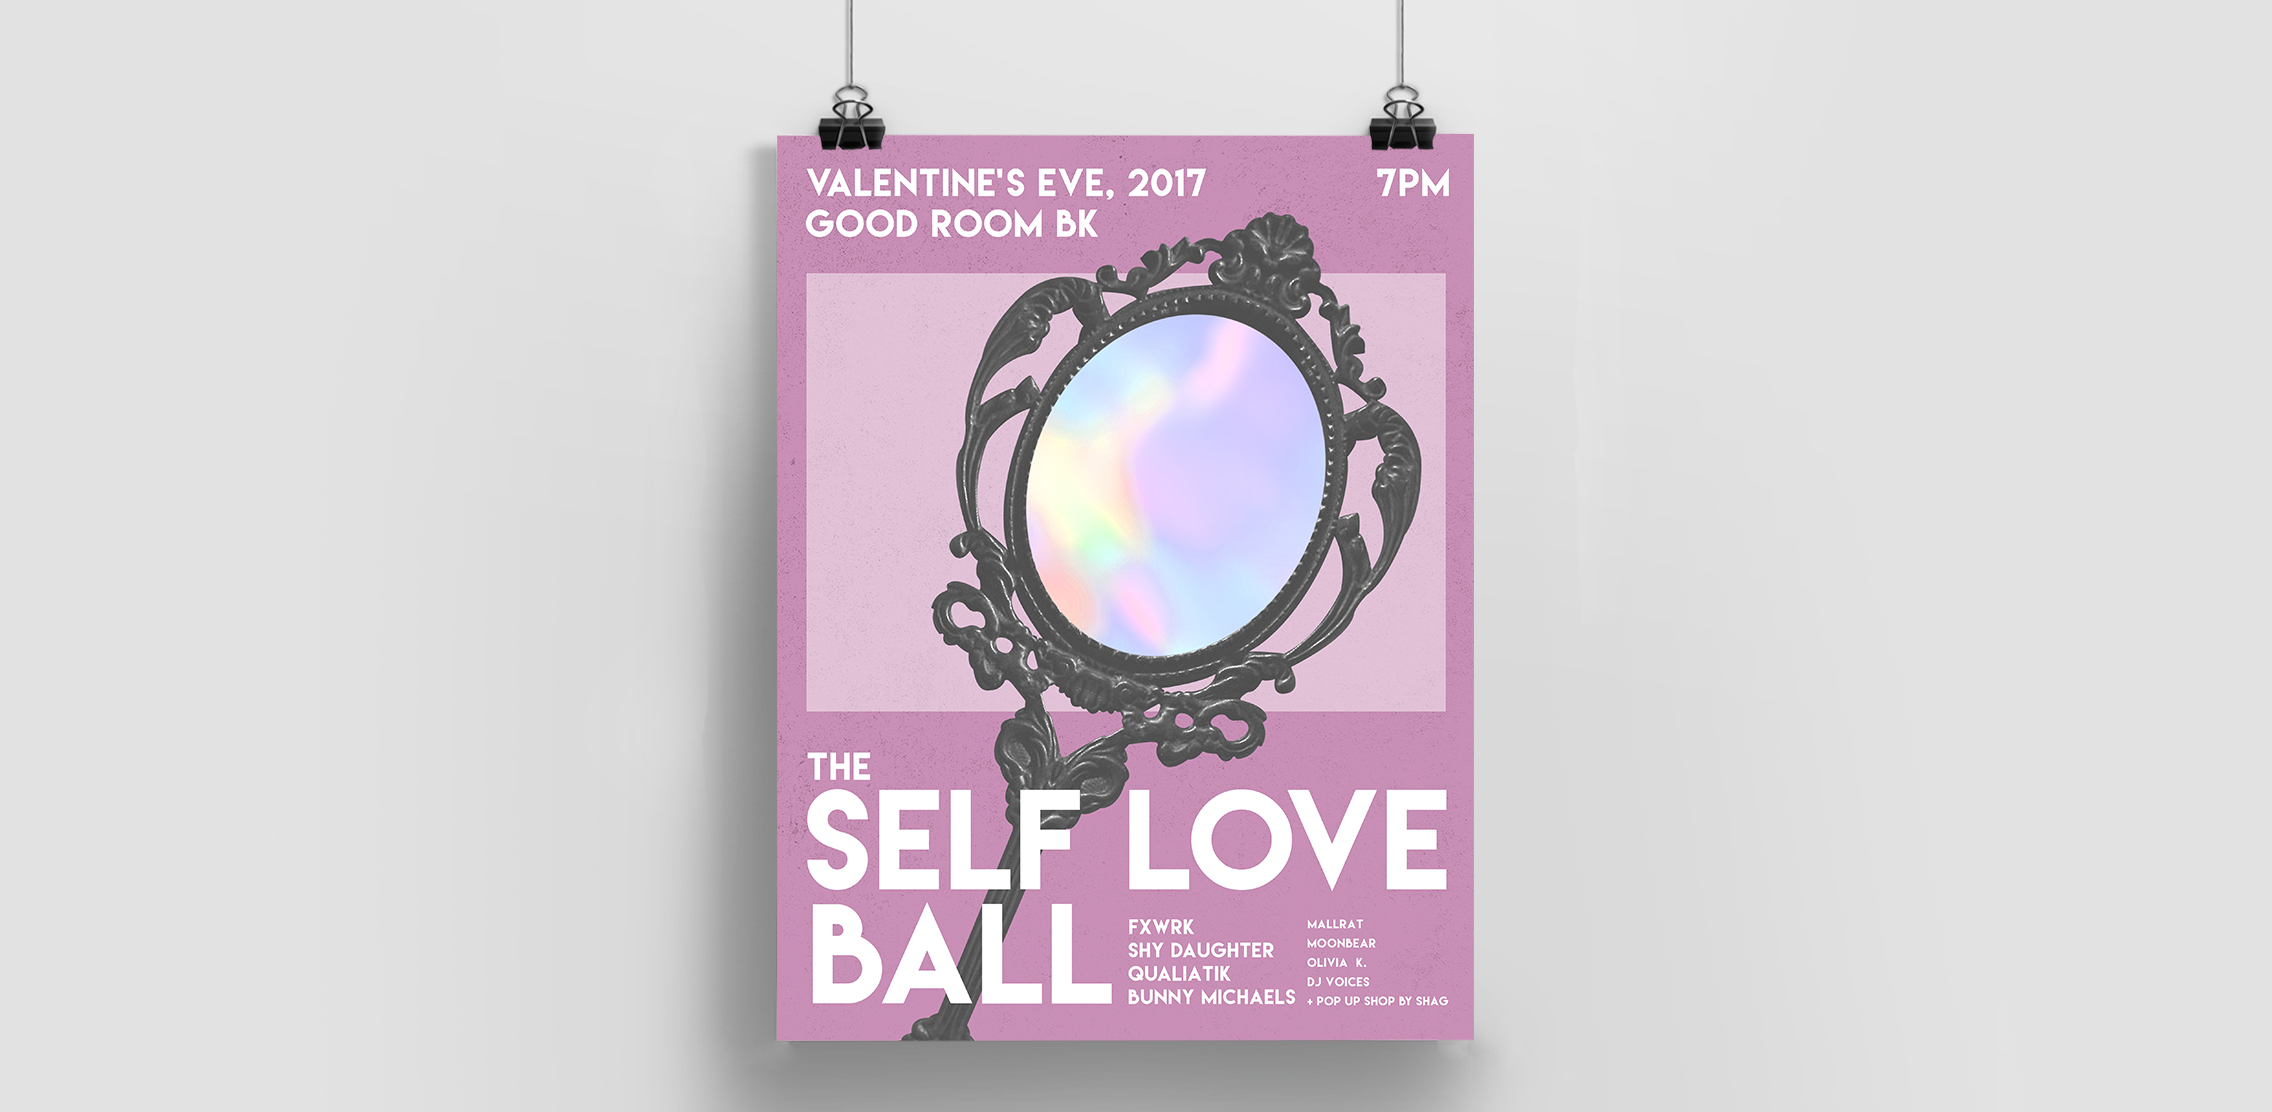 Poster for The Self Love Ball at Good Room, BK